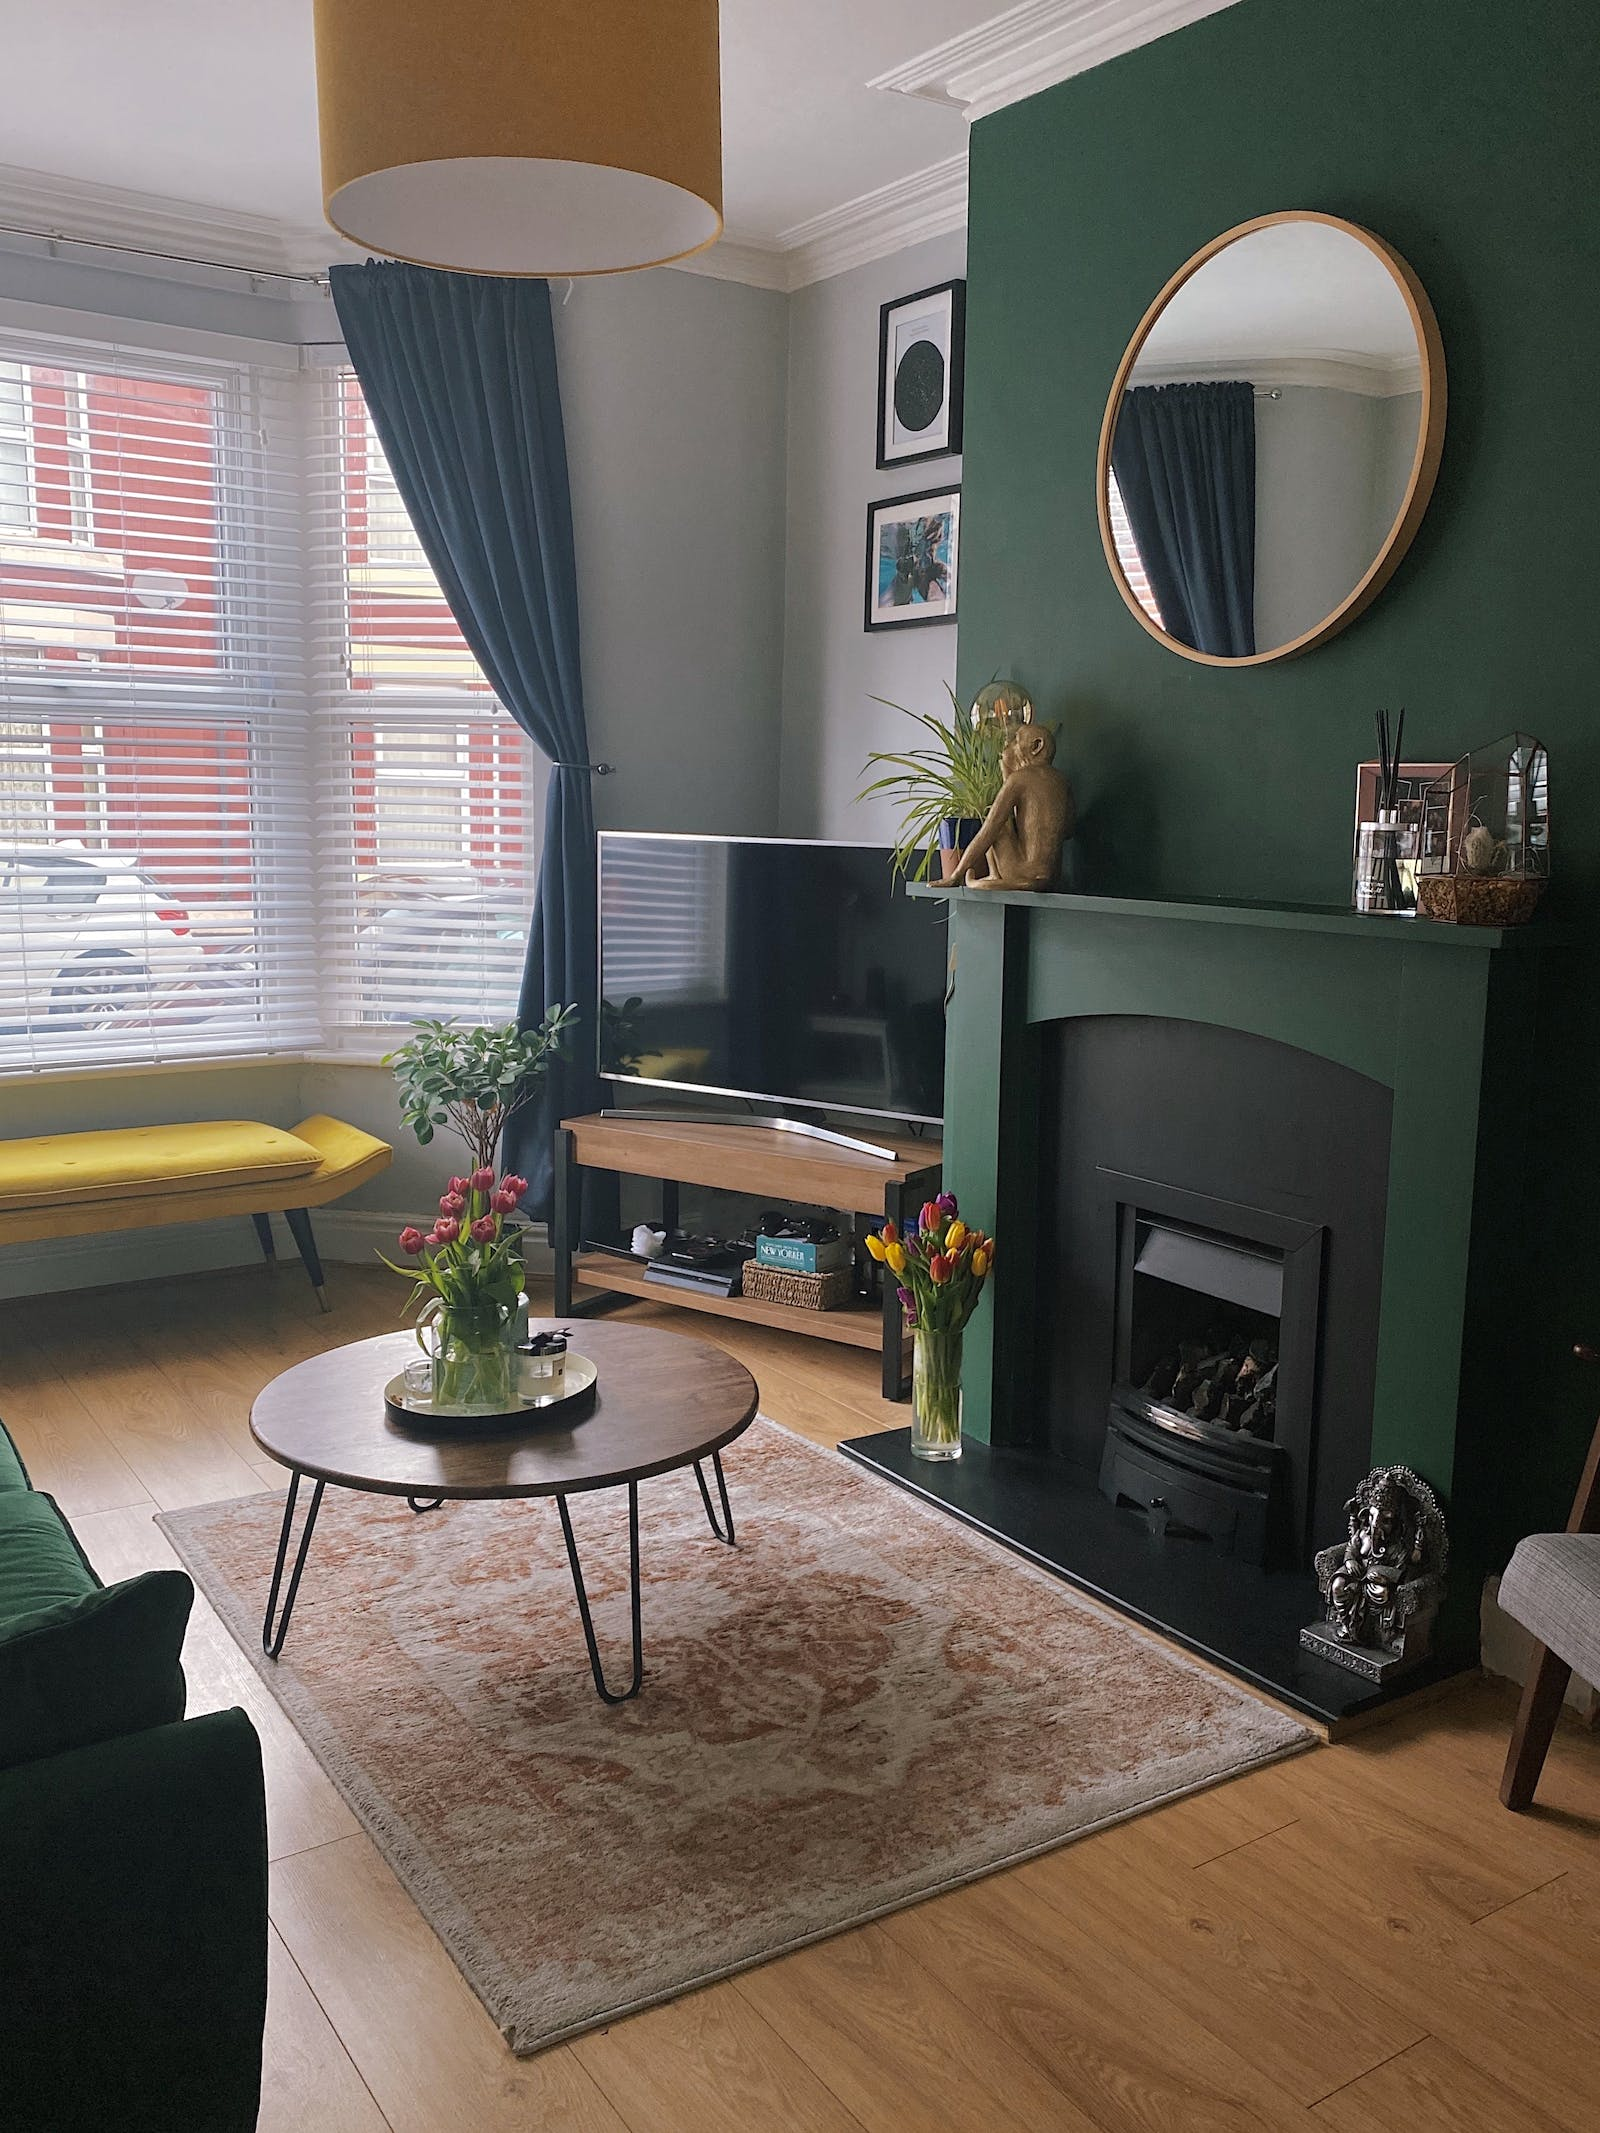 Living room with a statement wall and fireplace painted in dark green colour